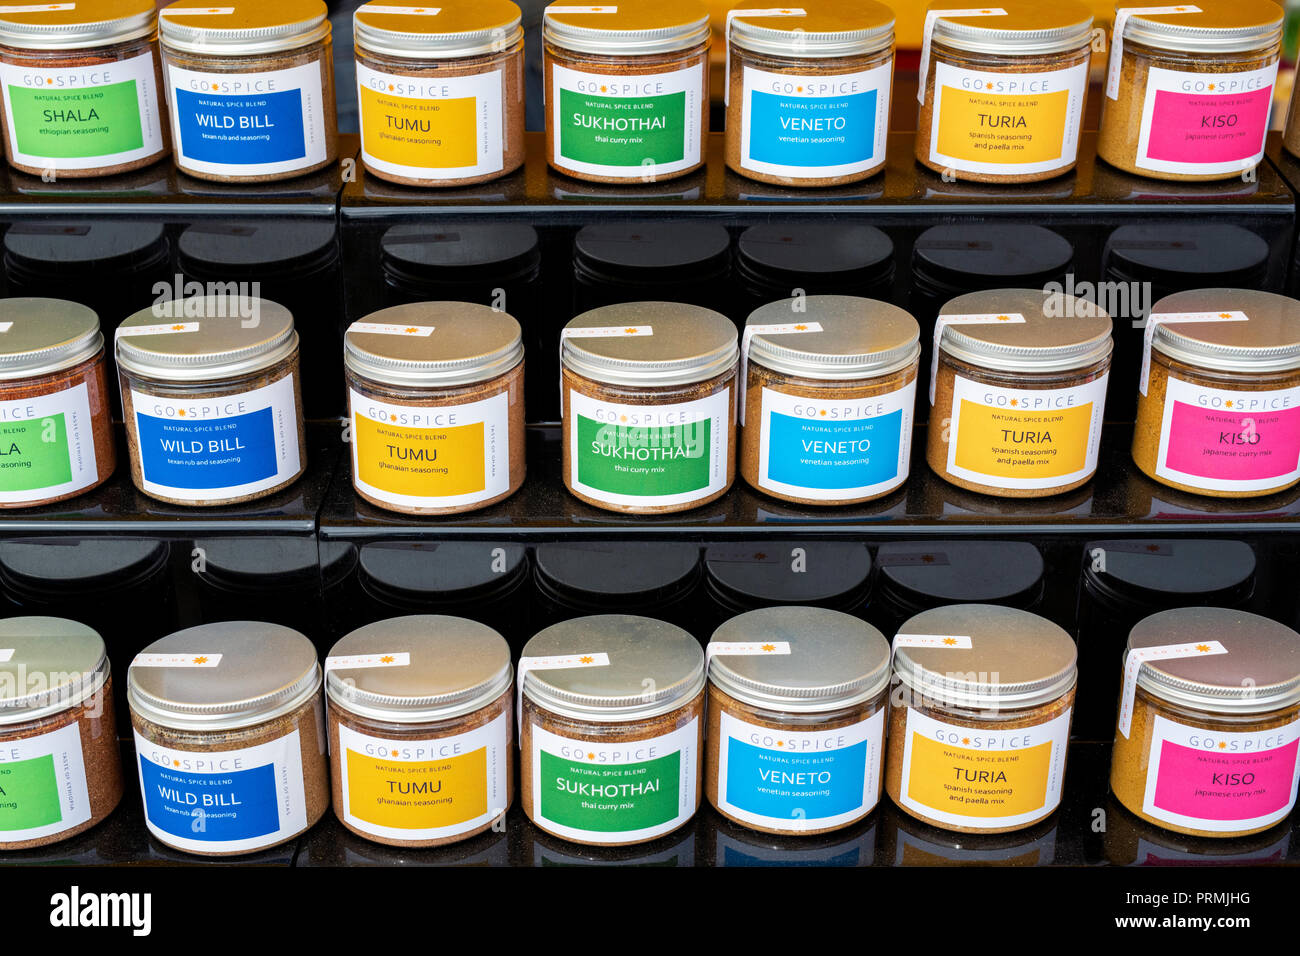 Artisan blended spice jars on a stall at the Thame food festival. Thame, Oxfordshire, England - Stock Image